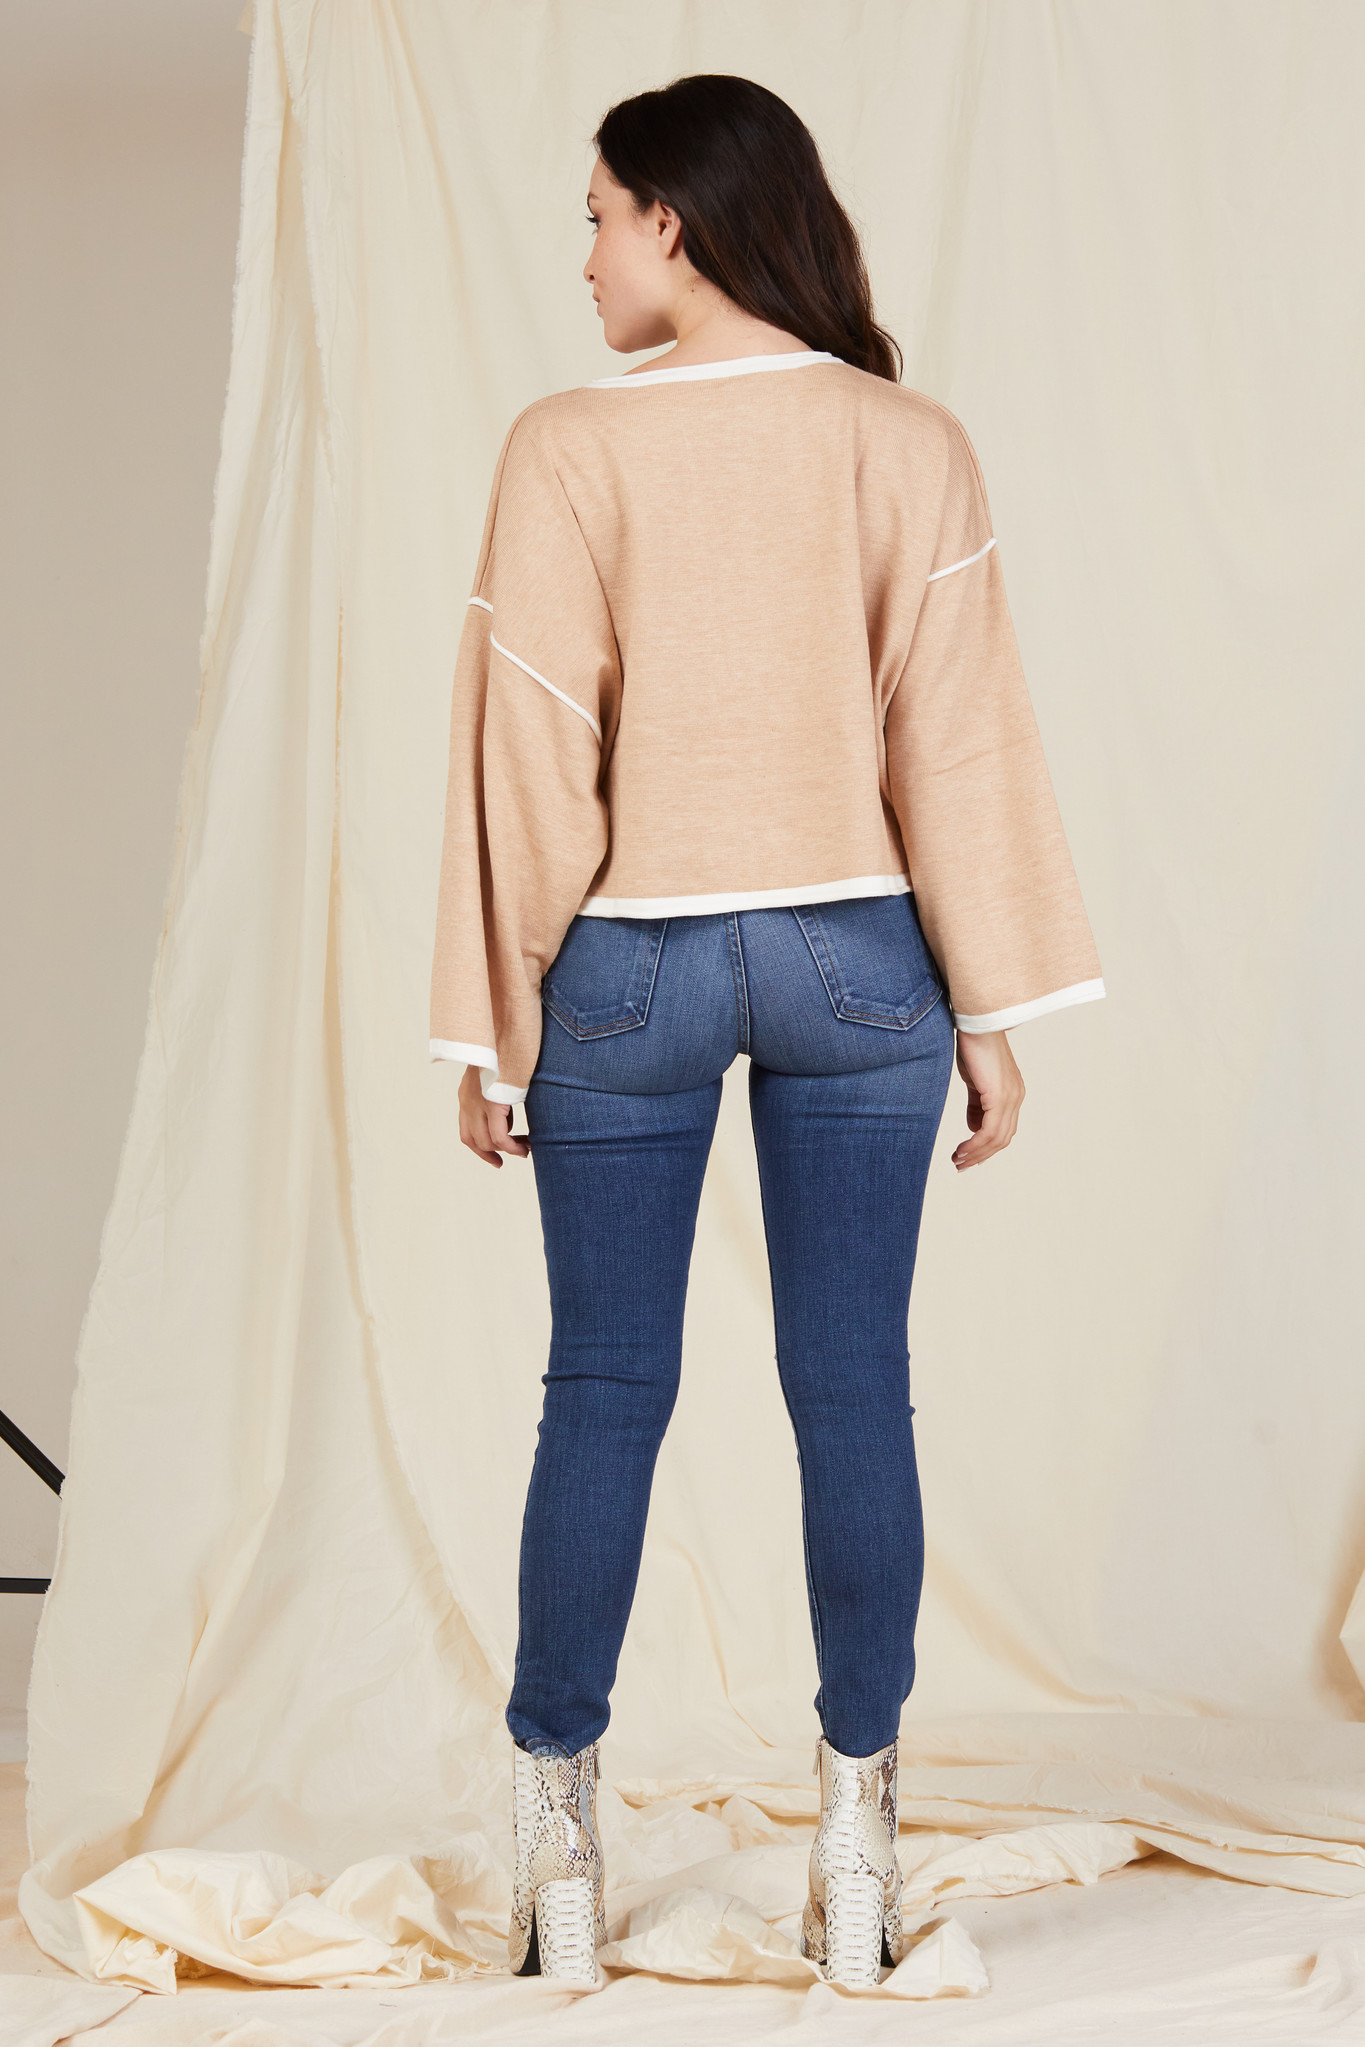 Knit Remain Neutral Top